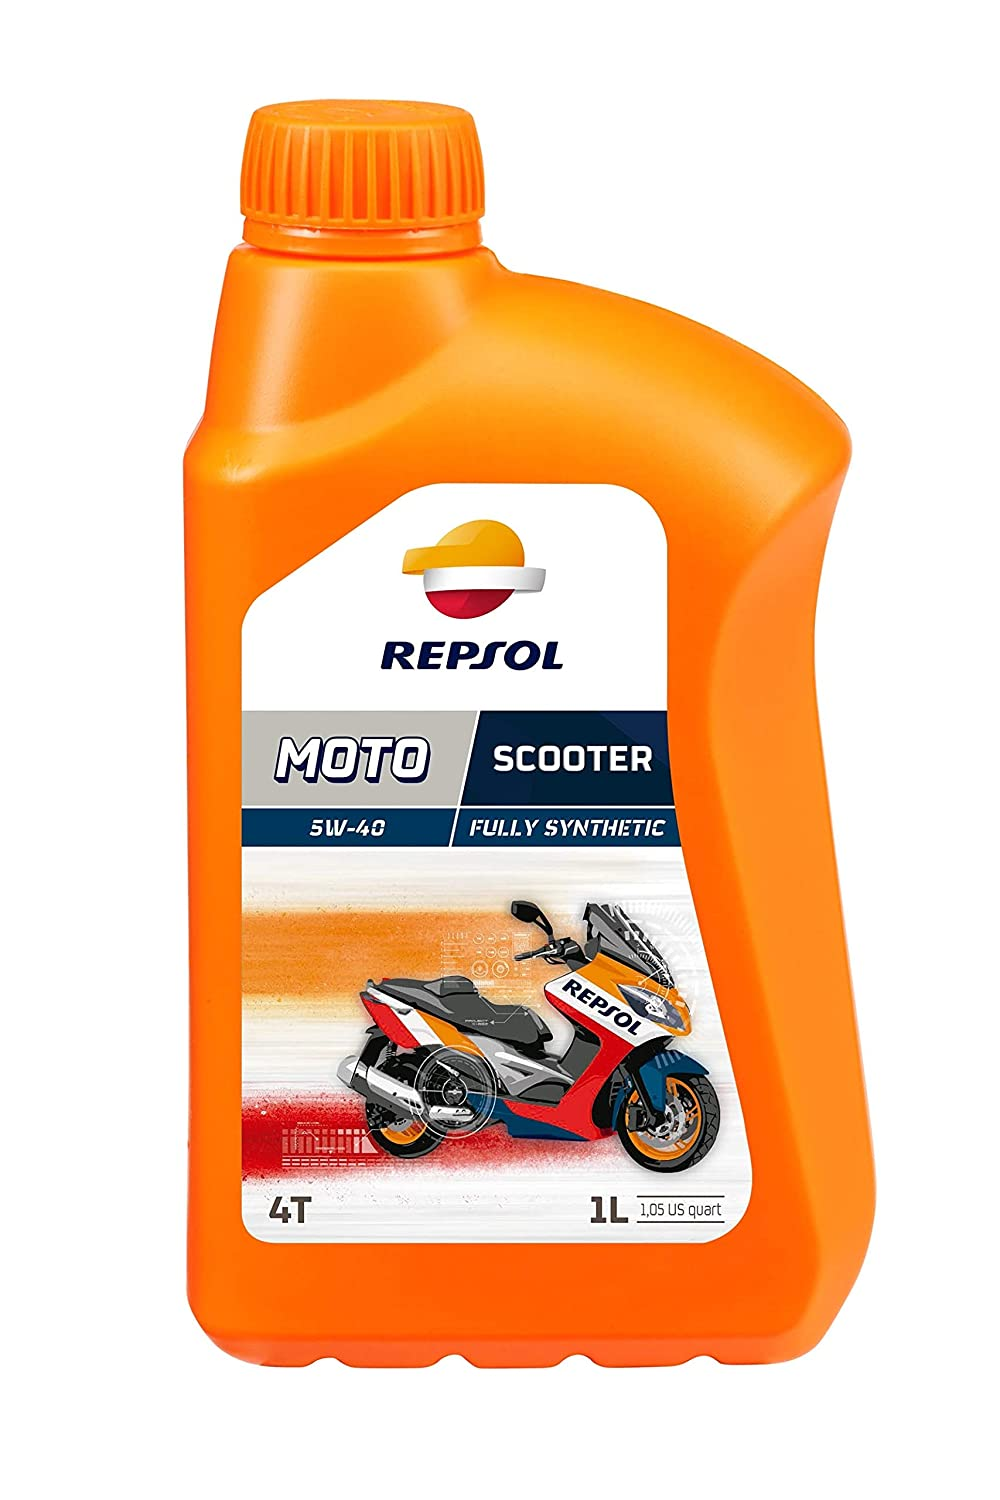 Repsol Moto Scooter 4T 5W40 Motorcycle Engine Oil 1 L Repsol S.A. RP164L51